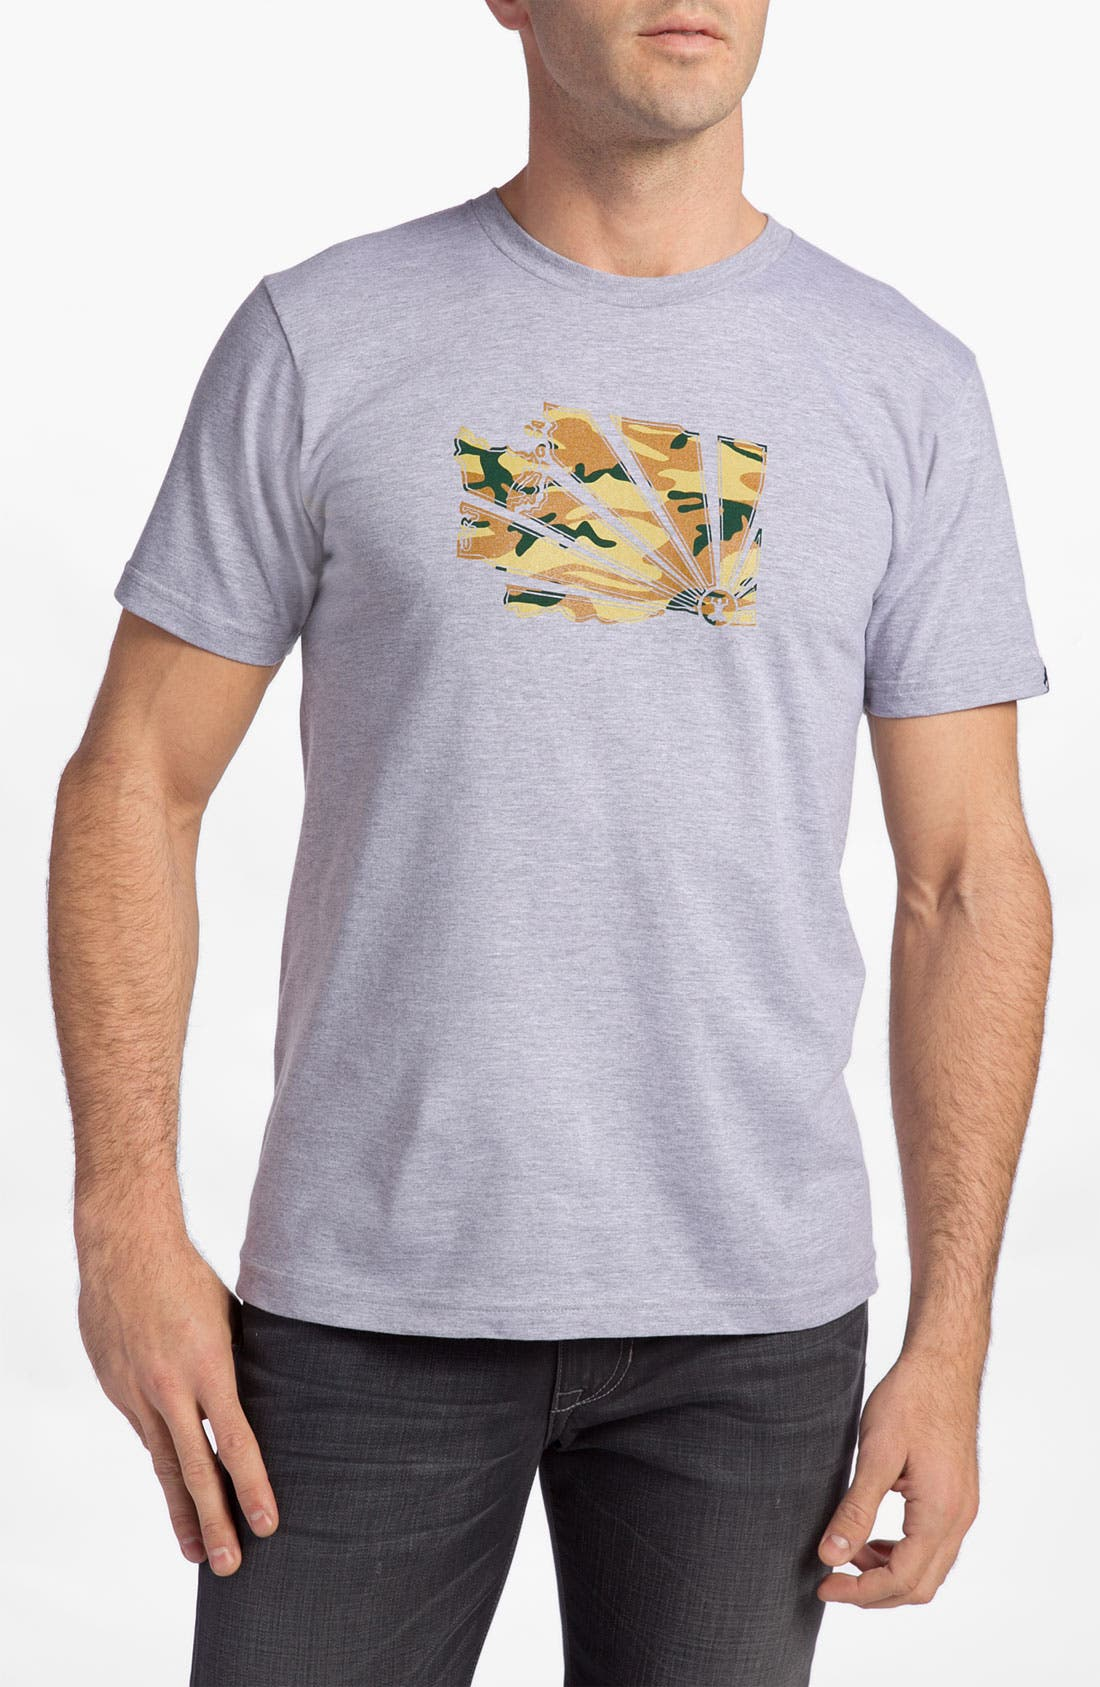 Alternate Image 1 Selected - Casual Industrees Graphic T-Shirt